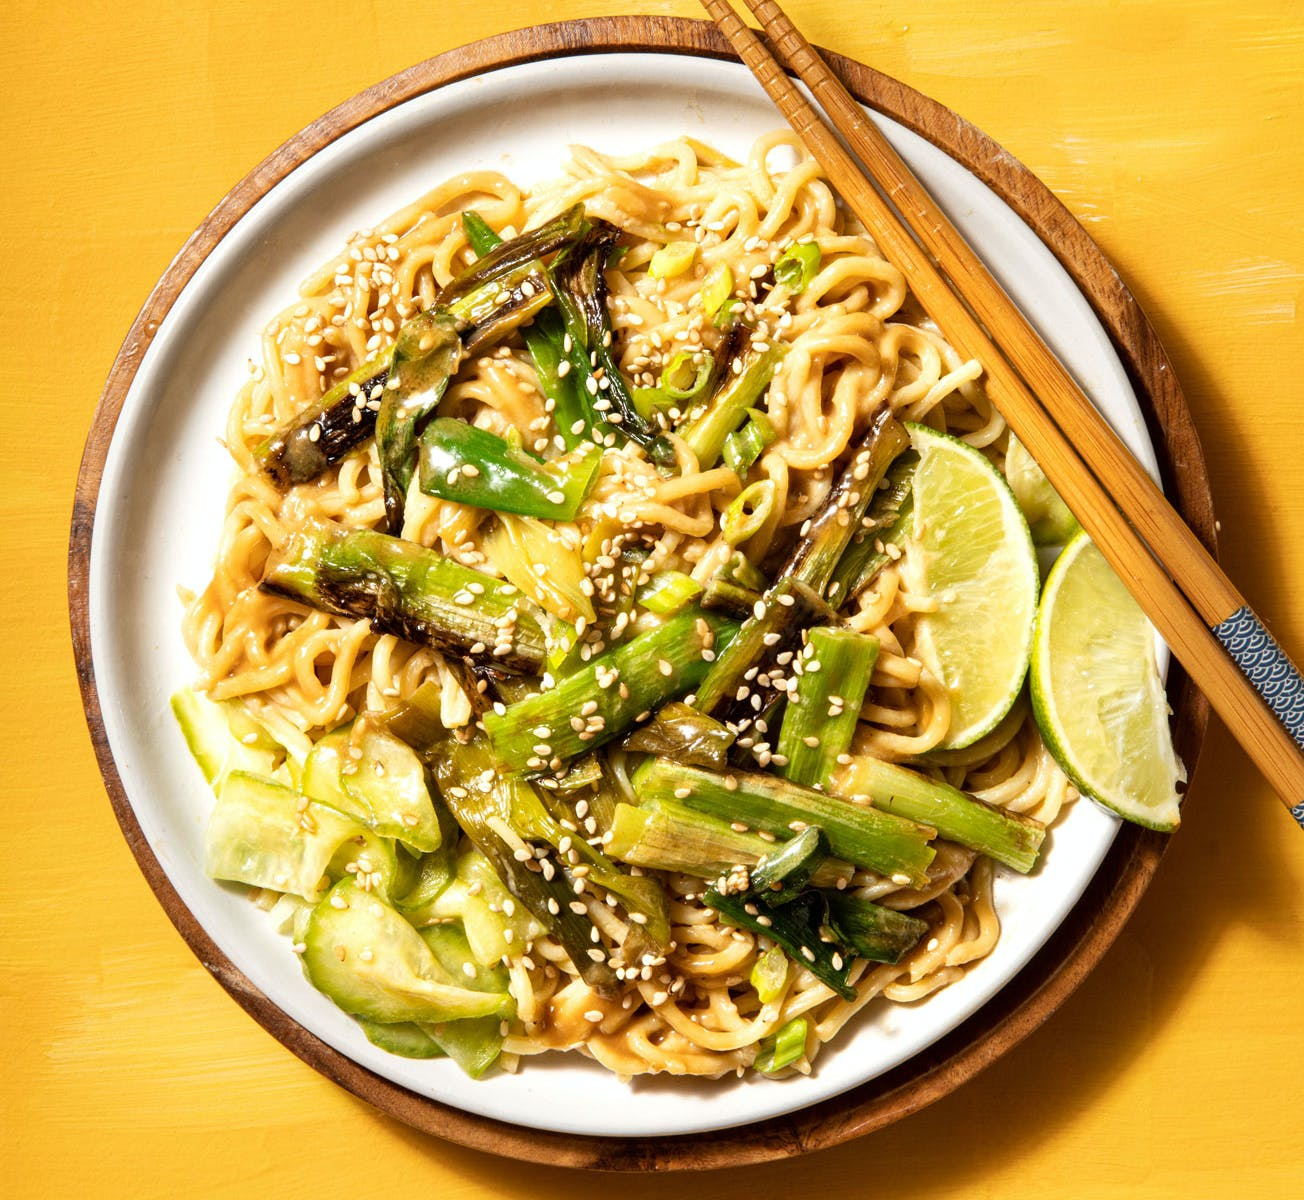 Charred spring onions and sesame noodles